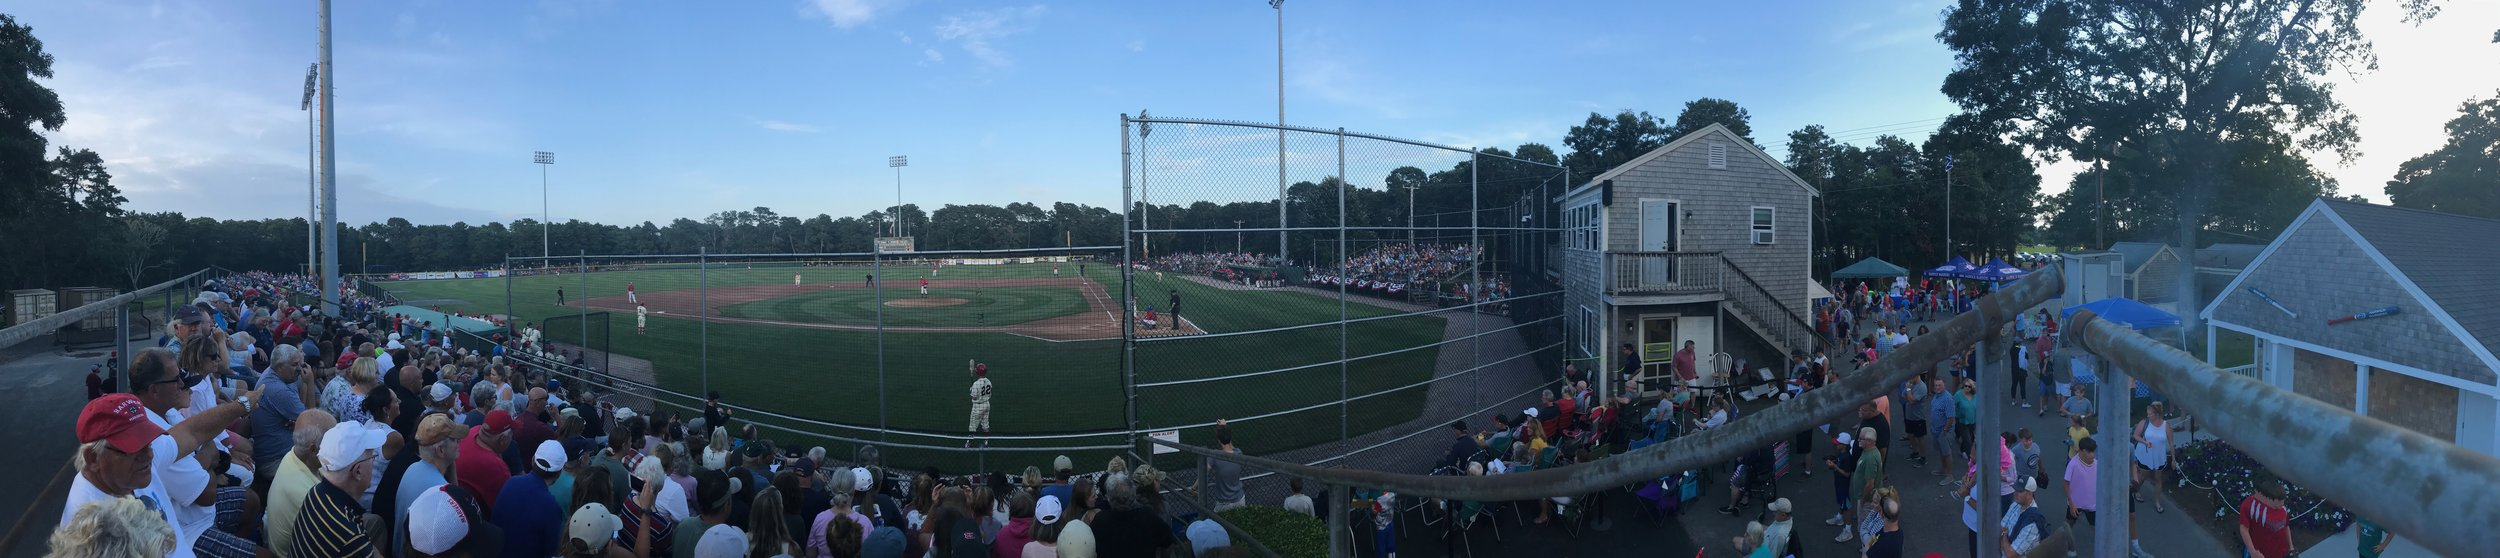 The crowd showed up in force at Whitehouse Field for Game 2 of the Eastern Championship series against the Y-D Red Sox.  Photo by Harrison Meyers.